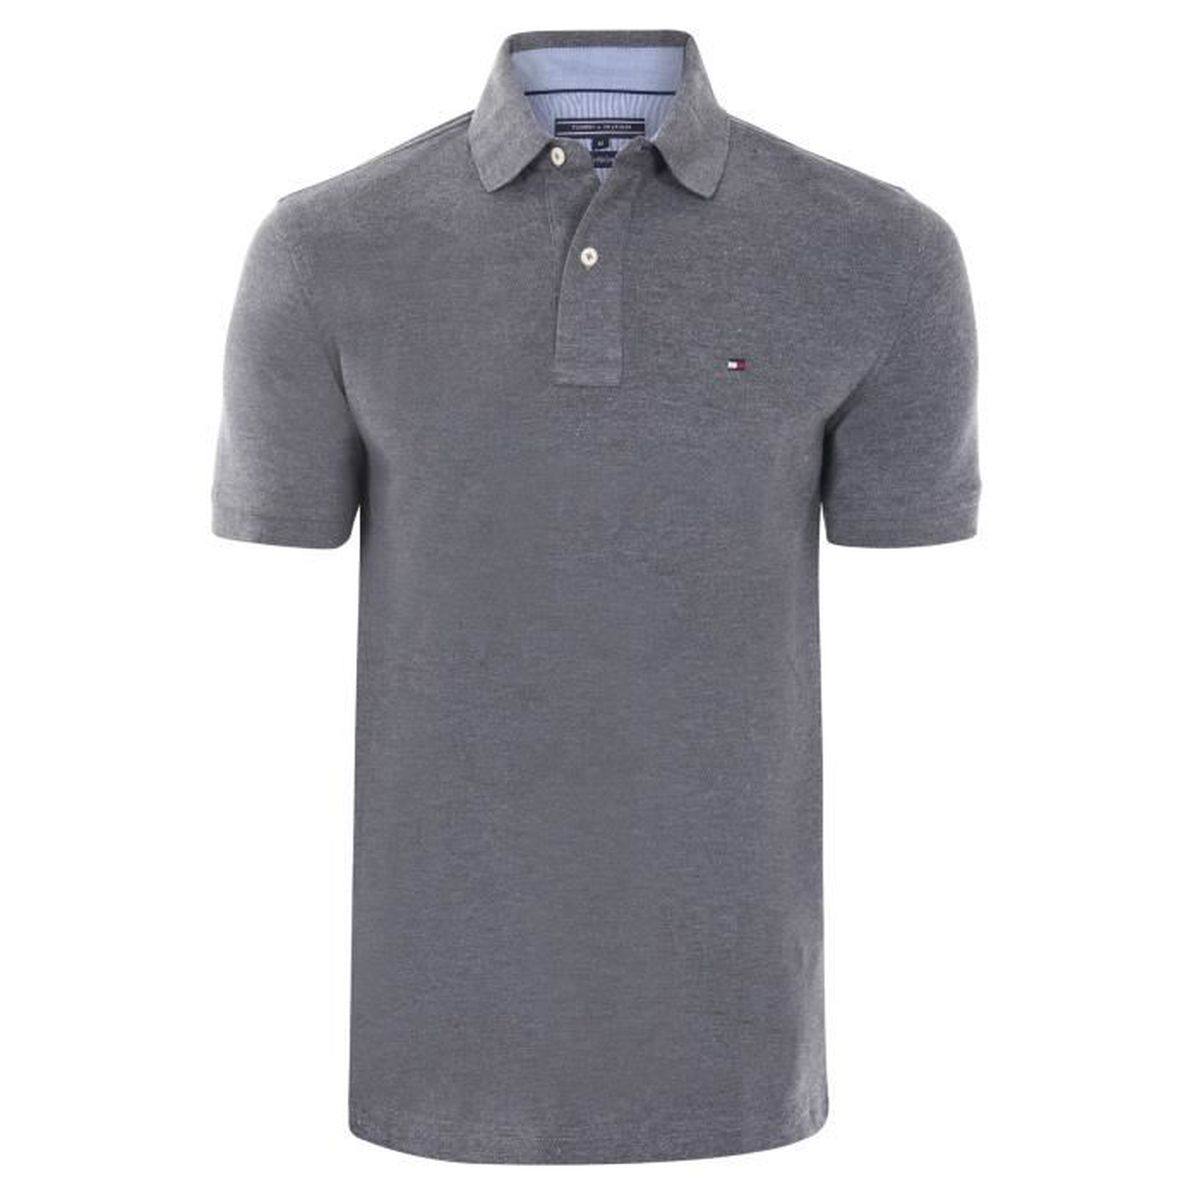 Polo Tommy hilfiger homme Achat Vente Polo Tommy